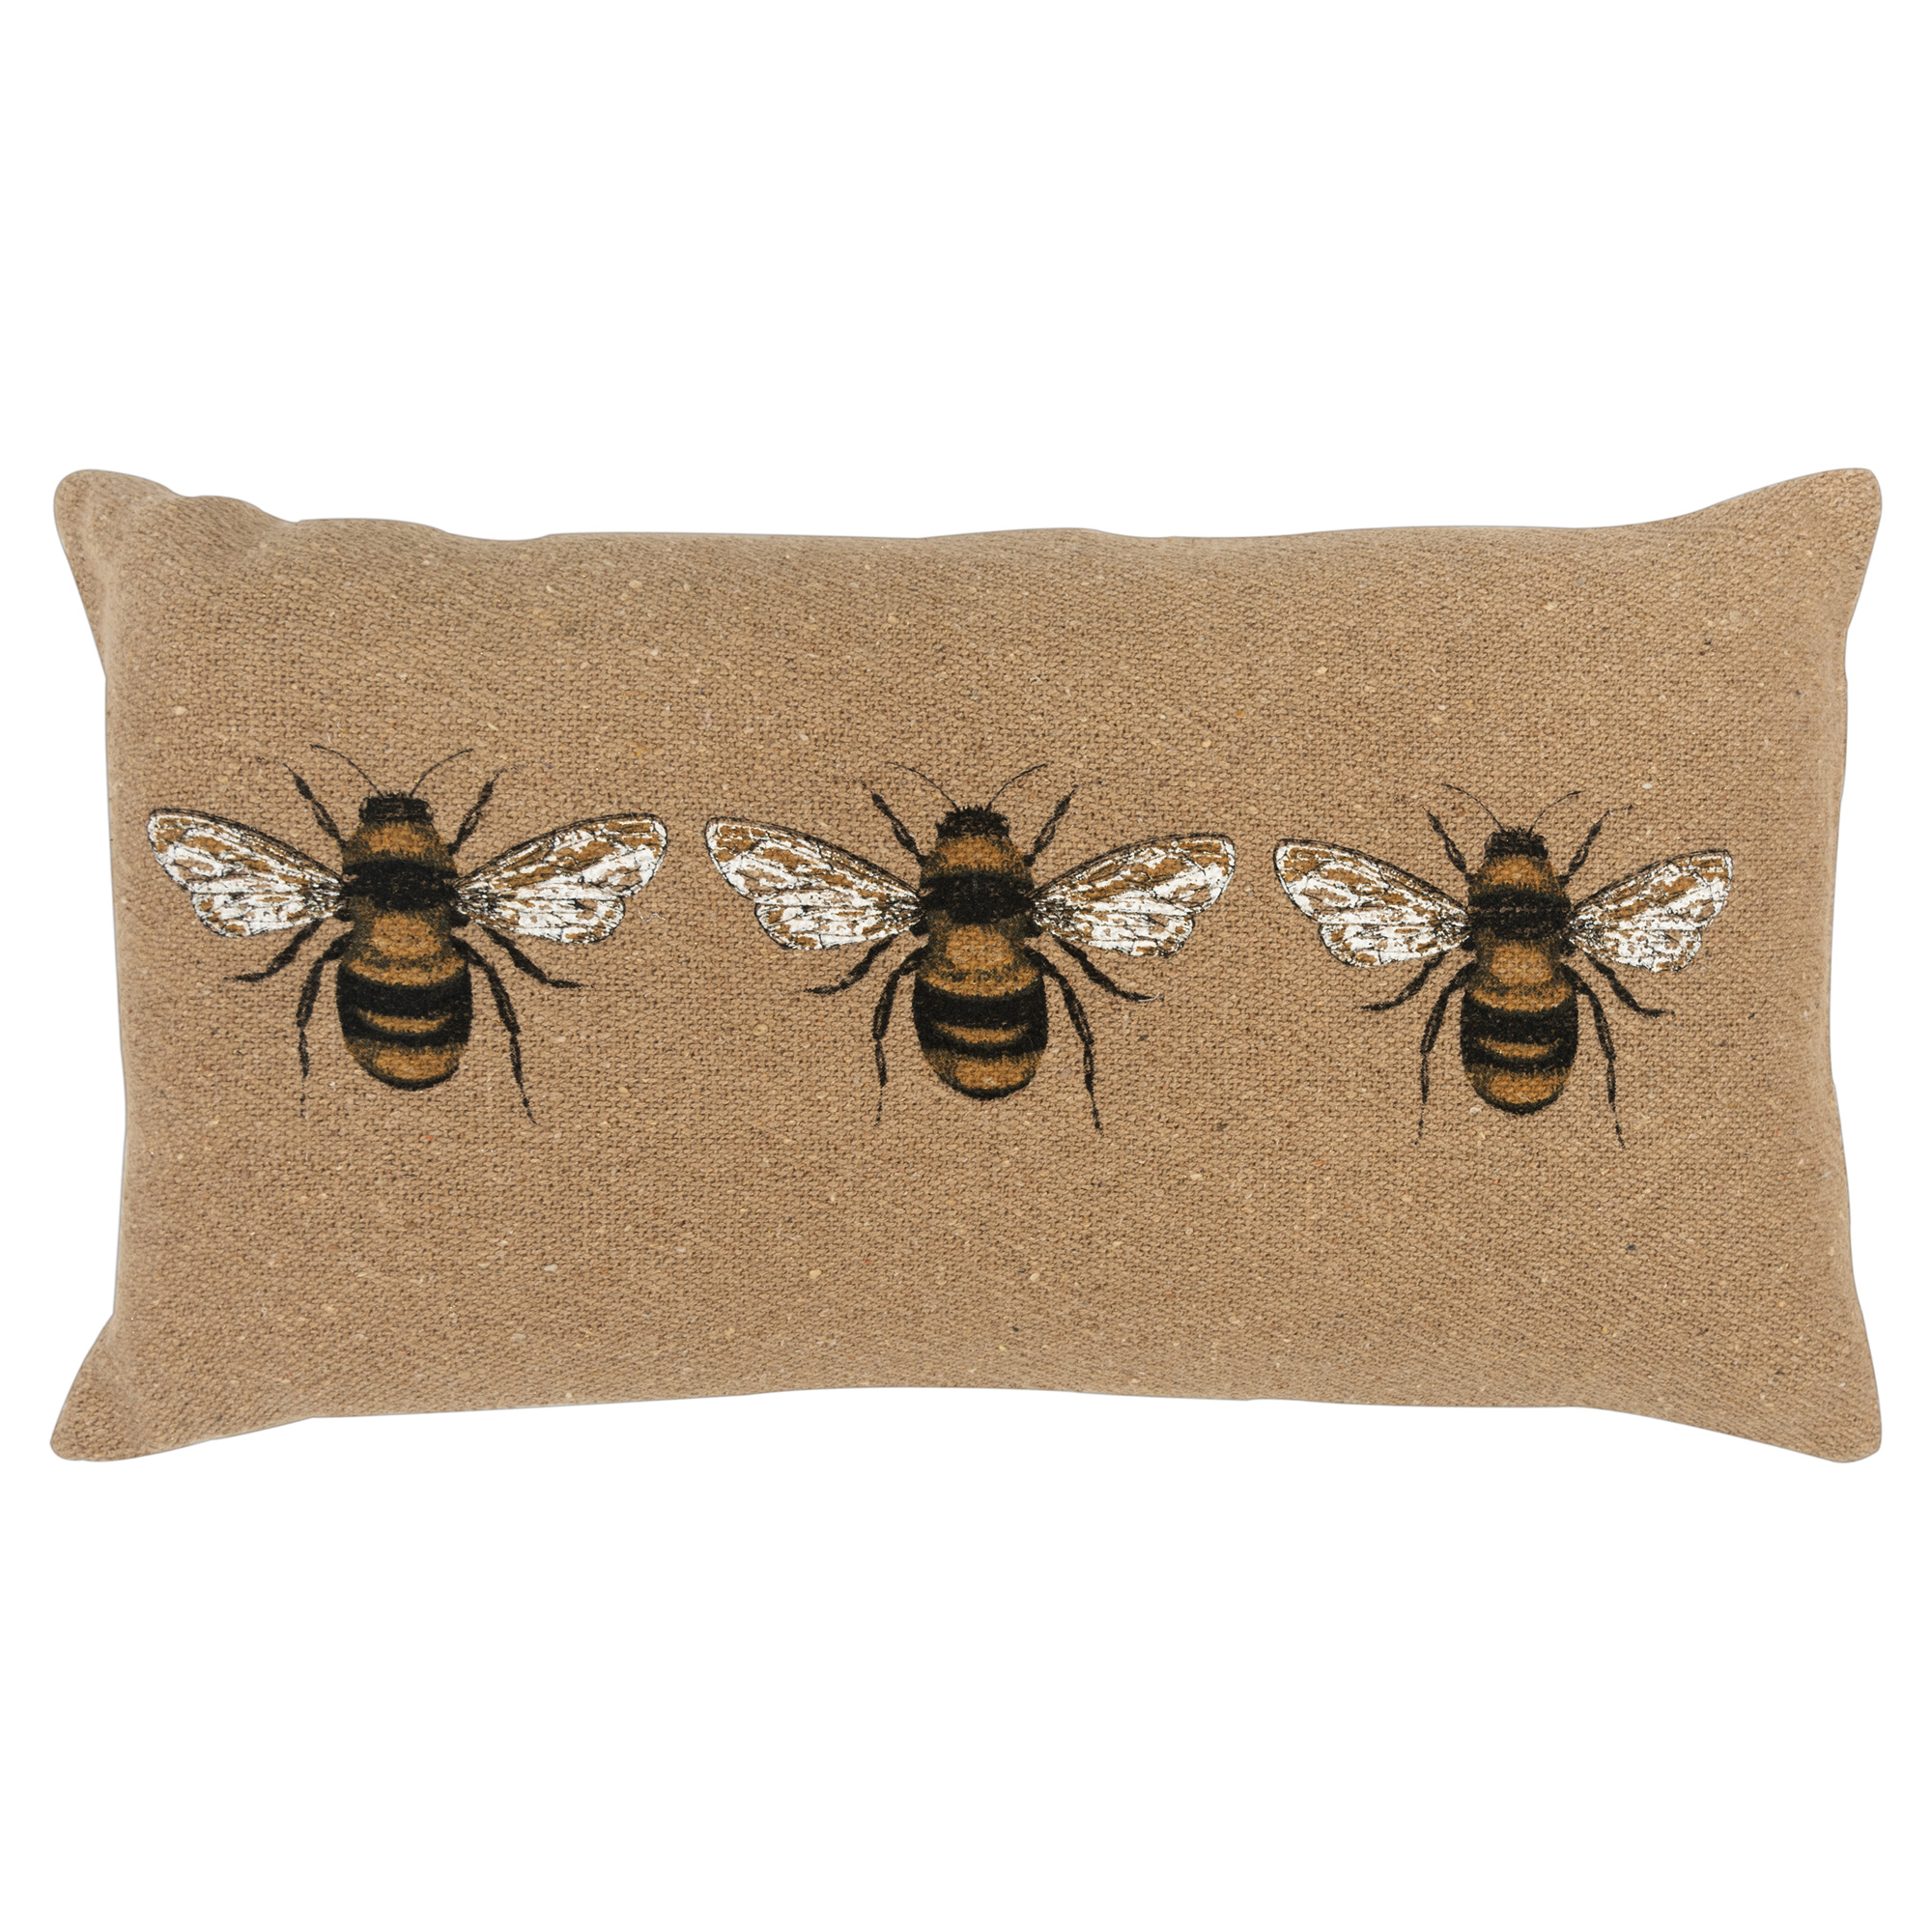 Rizzy Home | Bees Natural Pillow